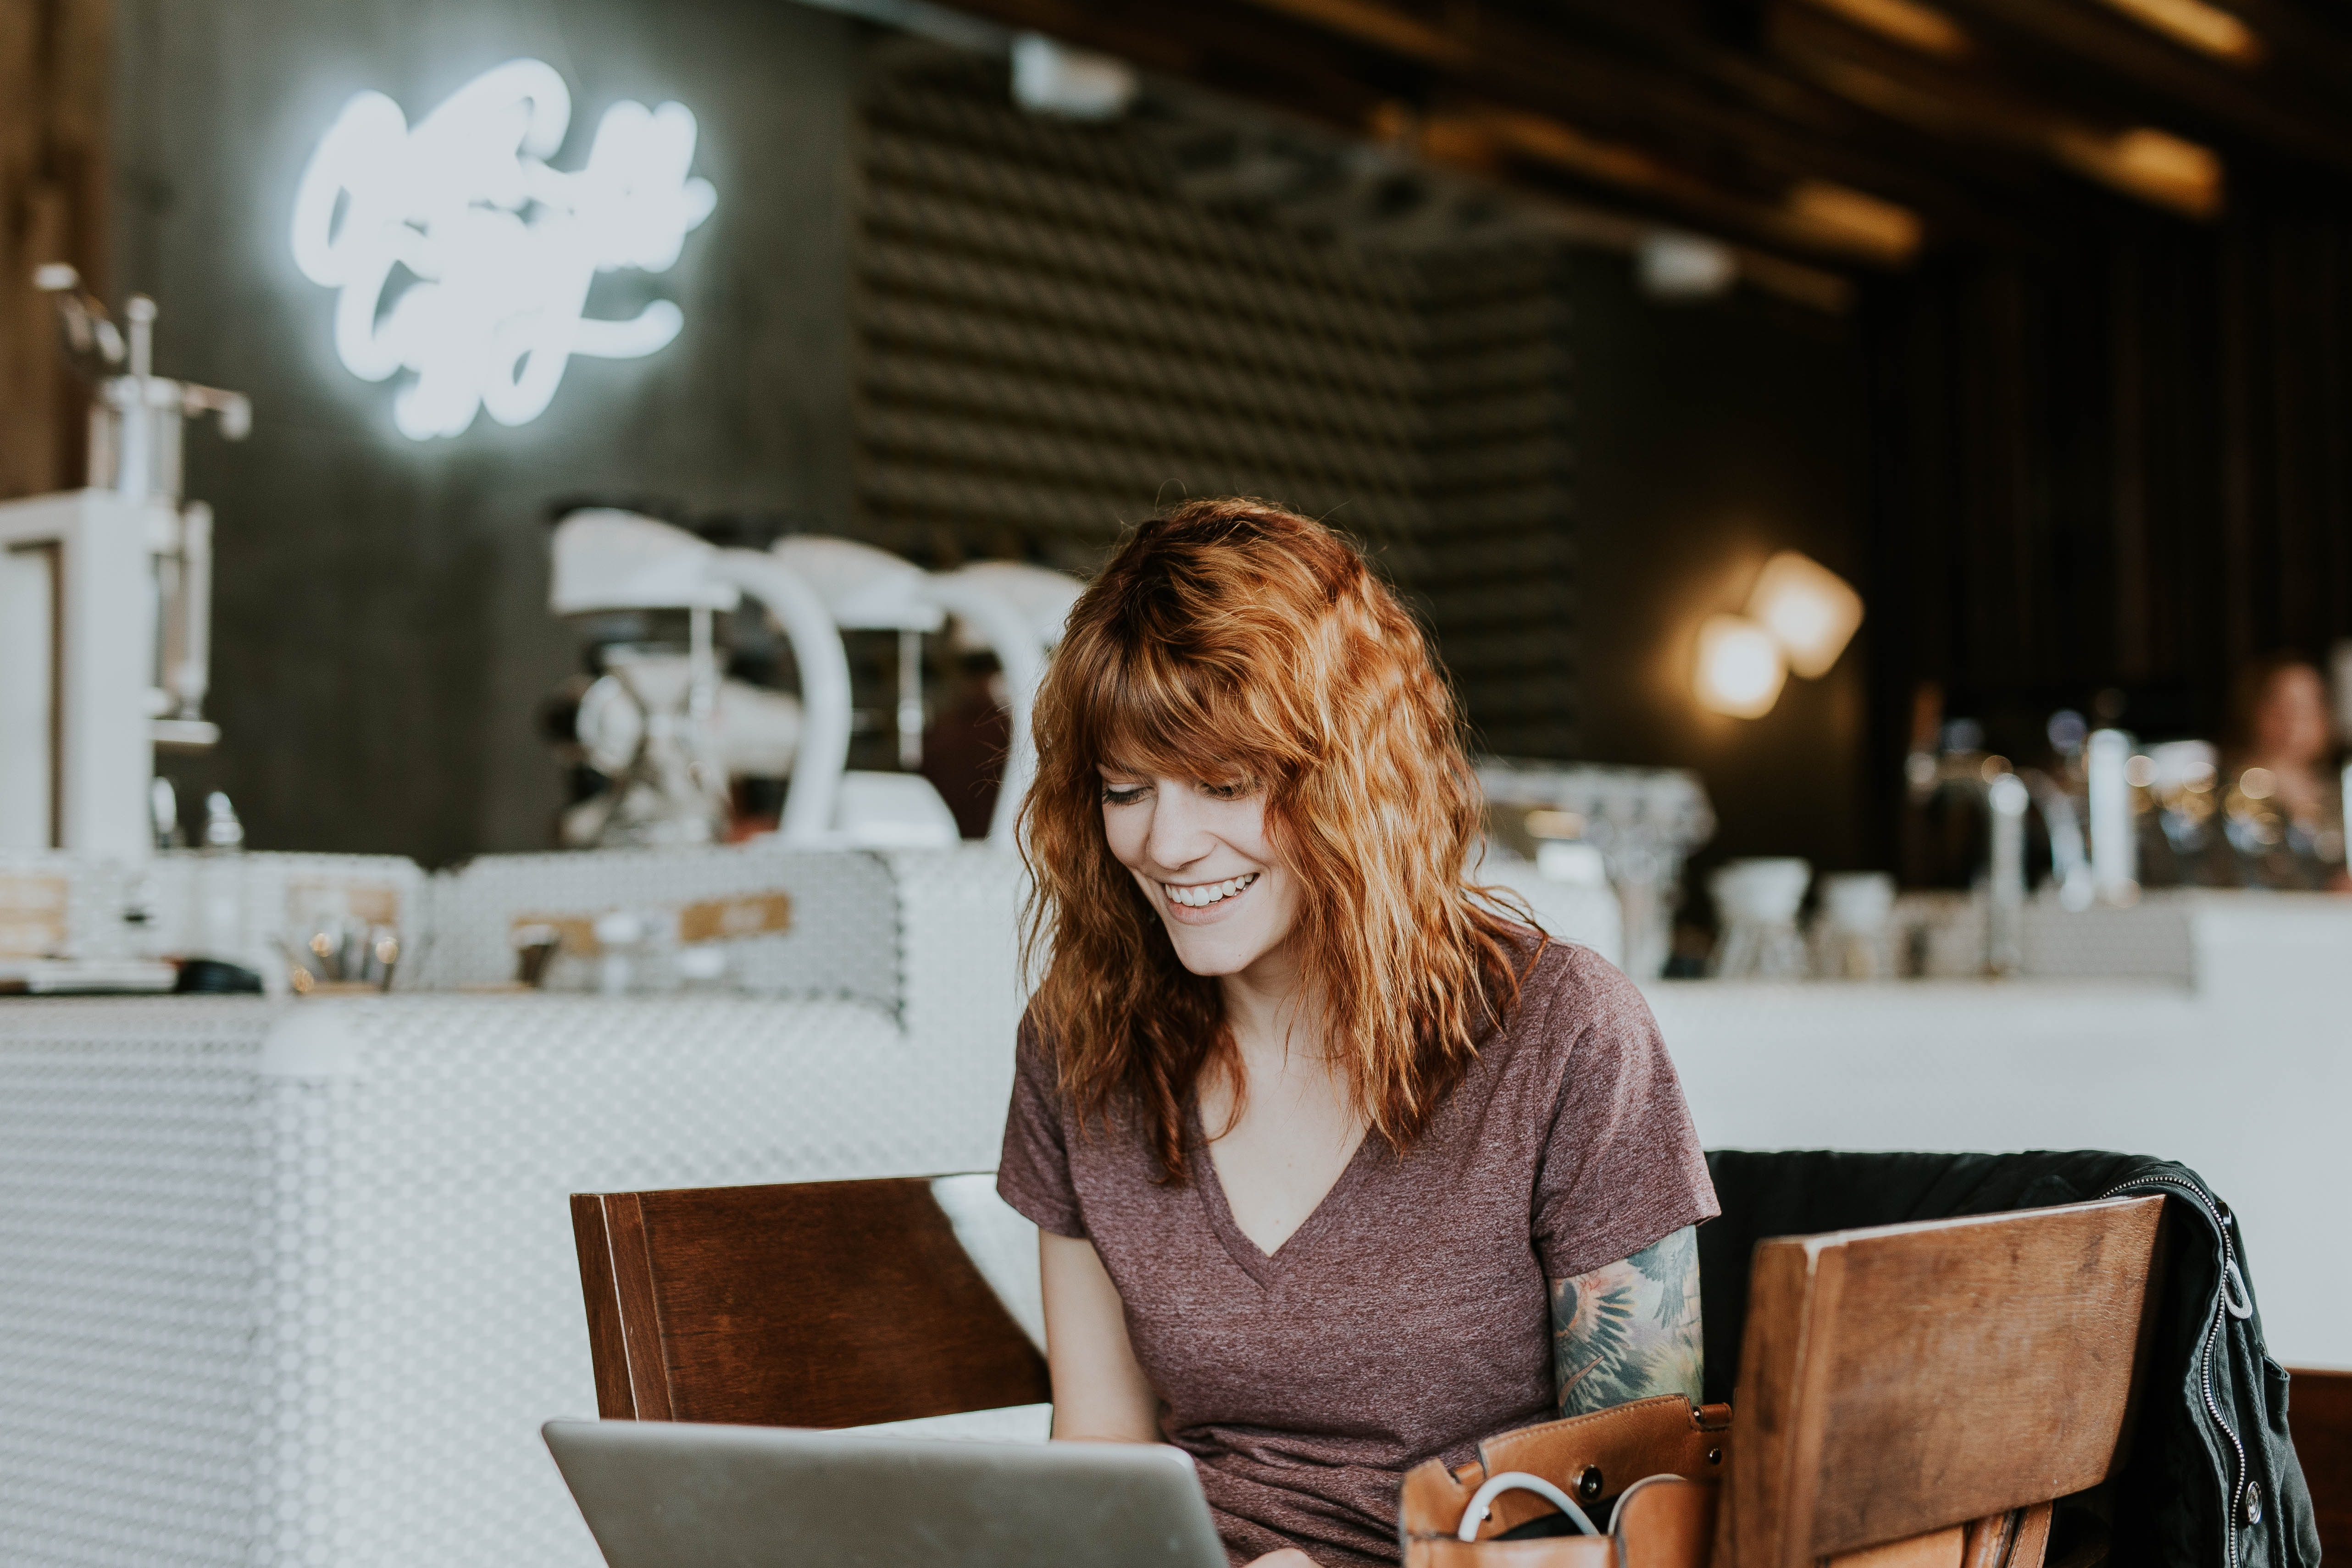 5 tips to beat the blues while working from home